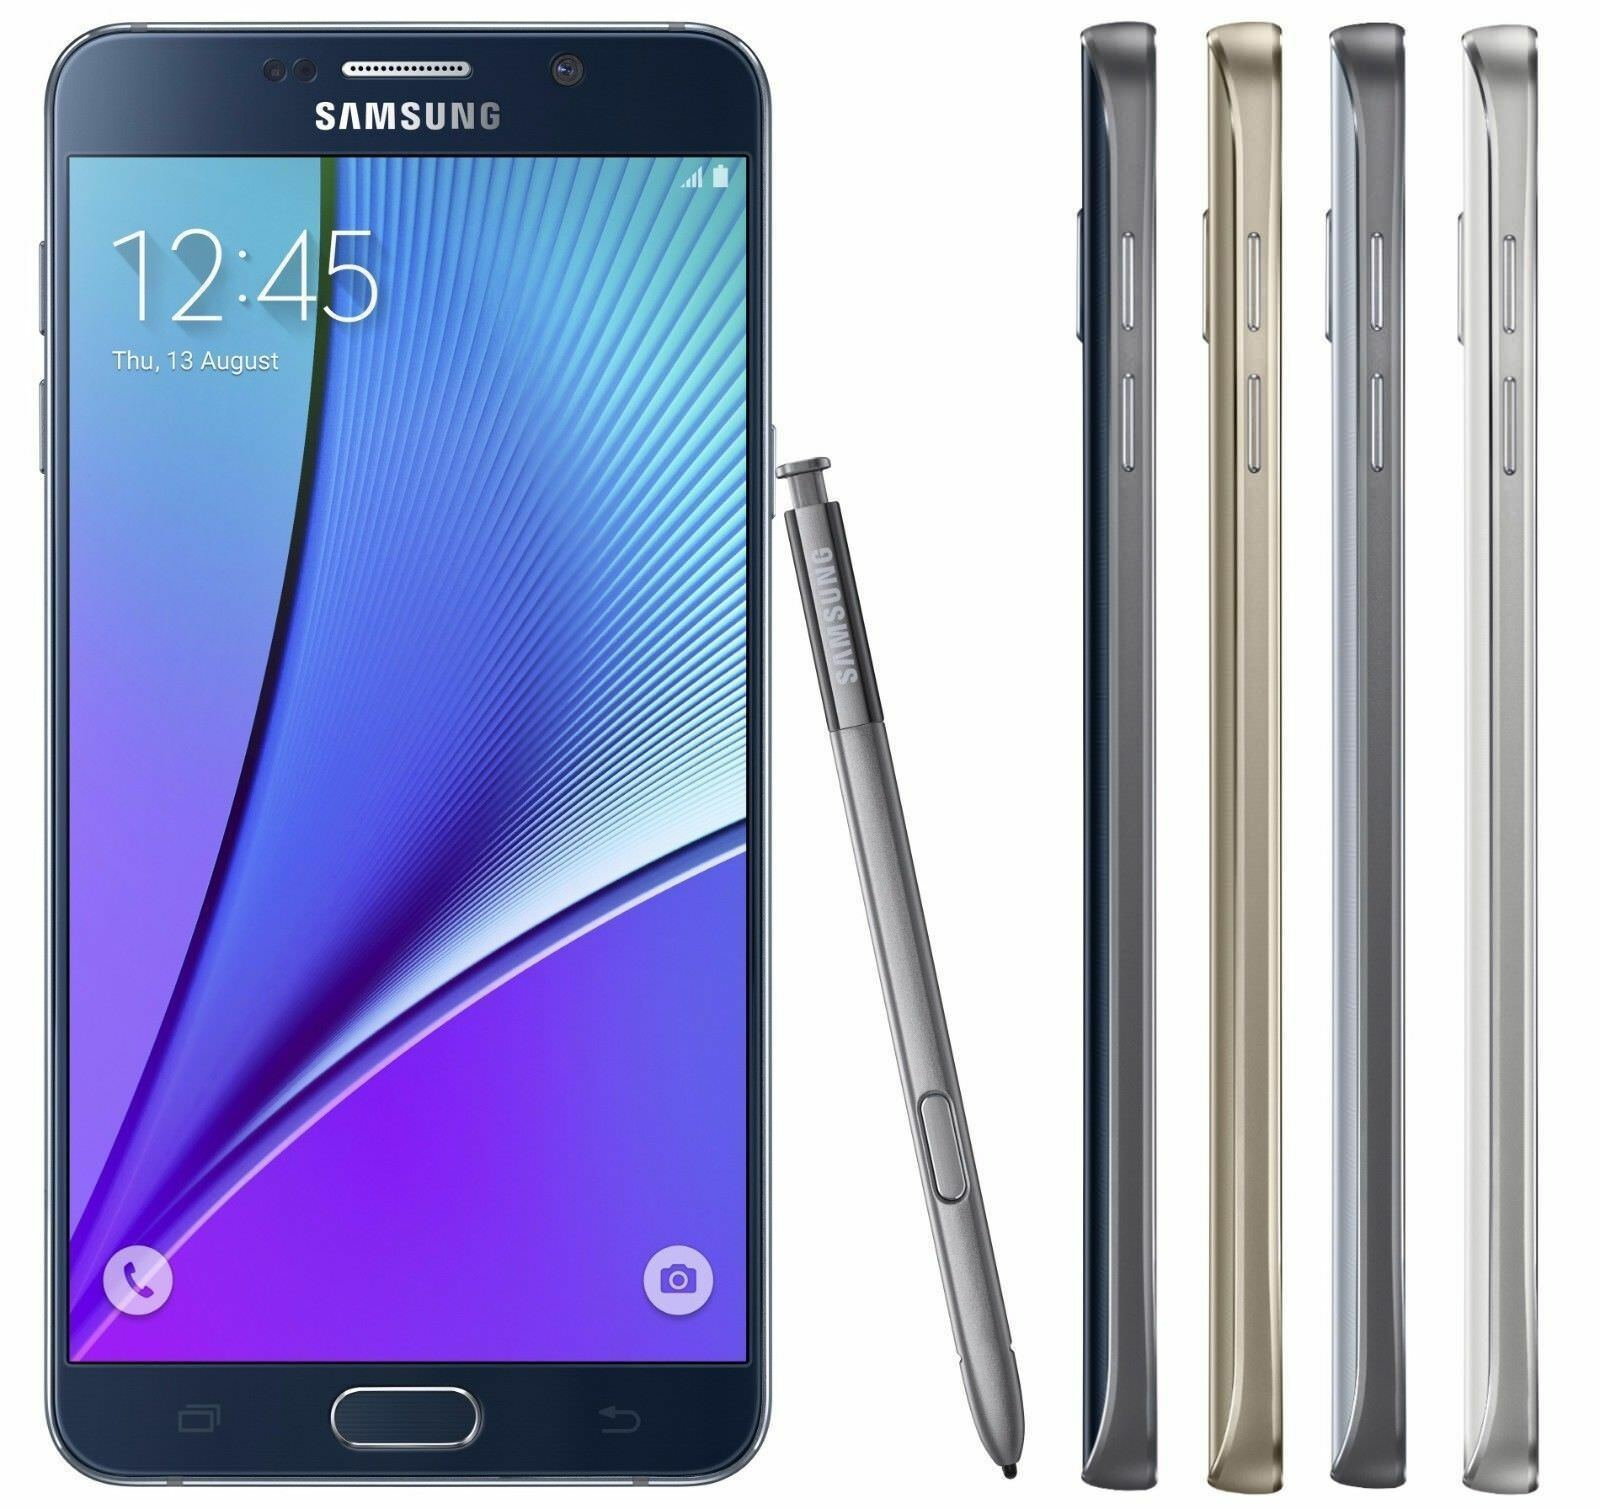 SELLER REFURBISHED SAMSUNG GALAXY NOTE 5 UNLOCKED 32/64GB - (GSM AT&T T-MOBILE H20) 4G SMARTPHONE